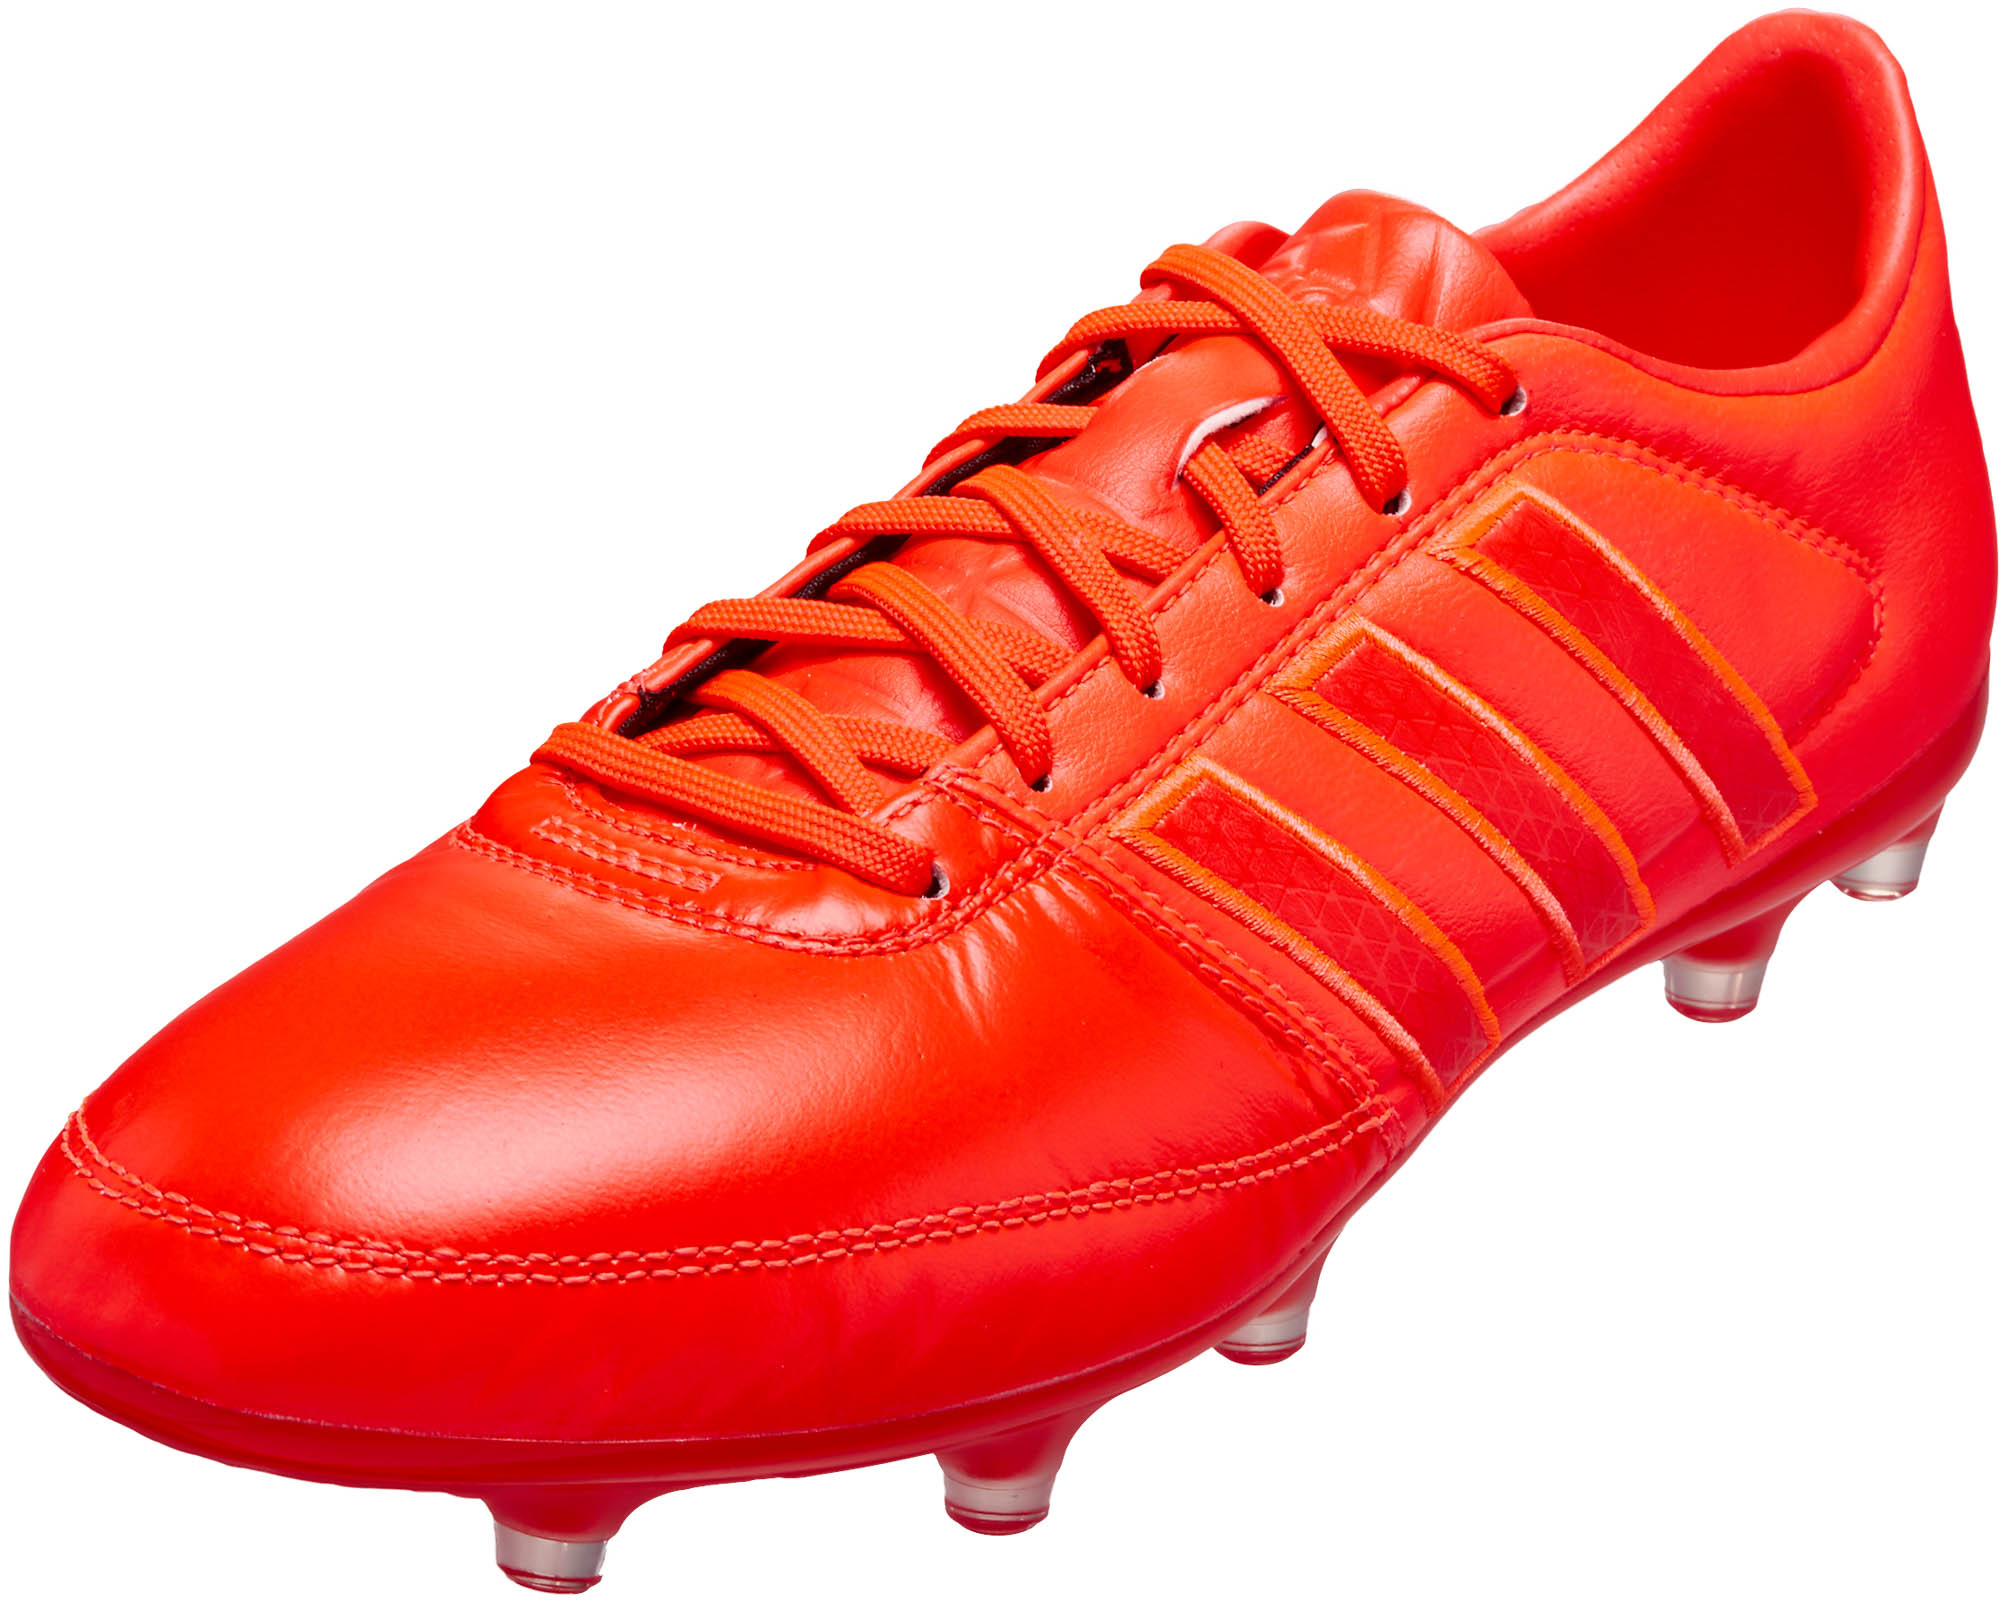 new arrival official photos good looking adidas Gloro 16.1 - Vivid Red adidas FG Soccer Cleats